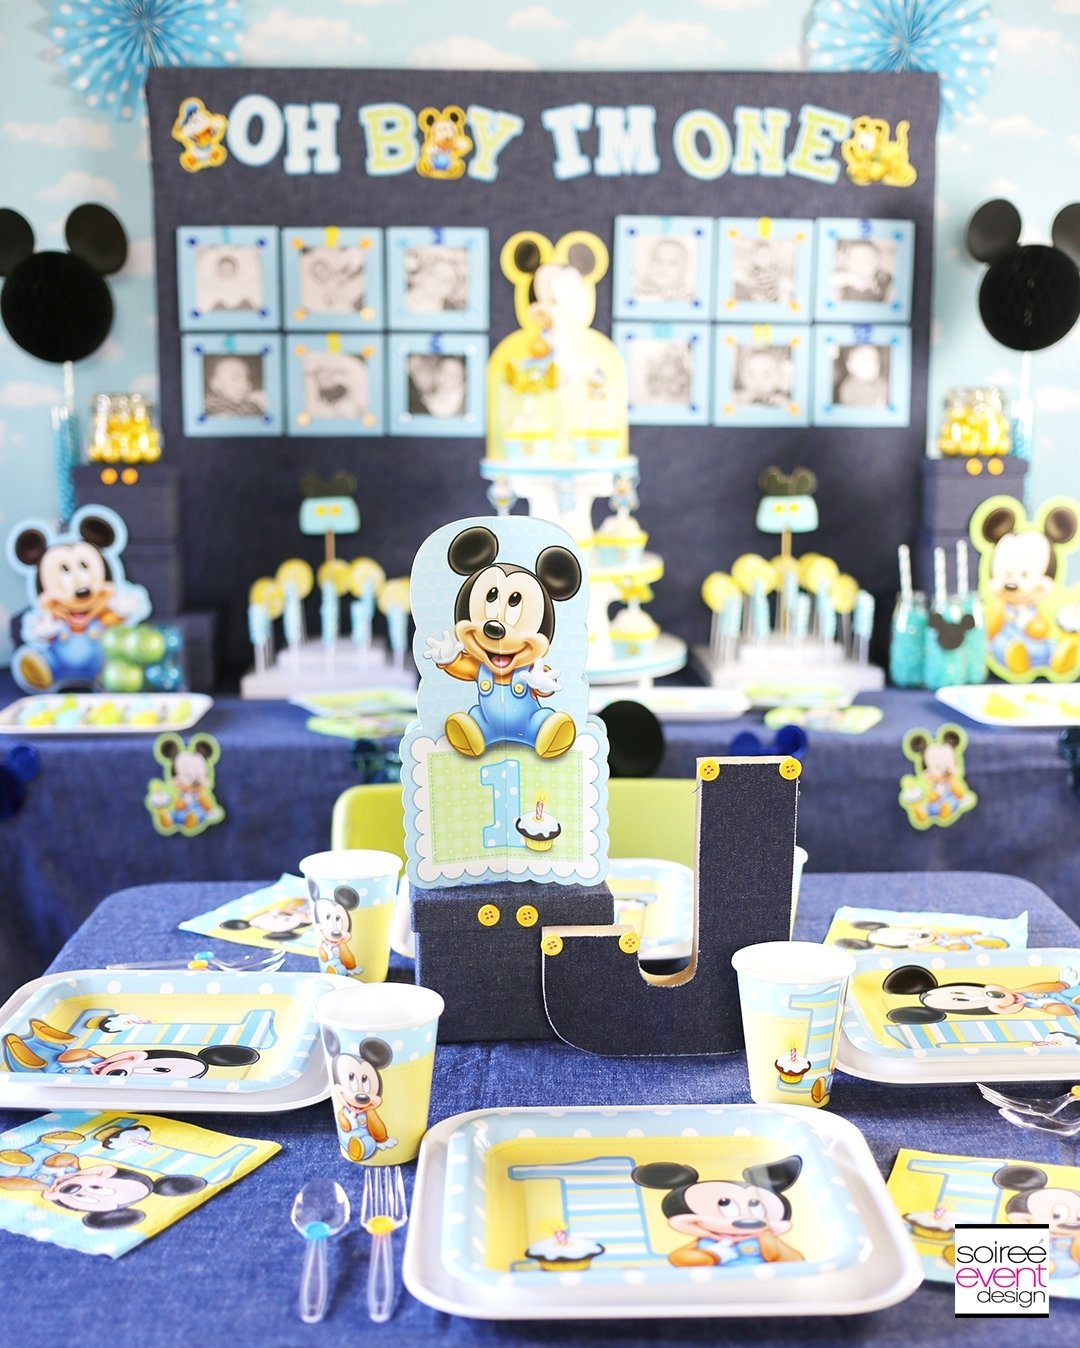 10 Most Recommended 1 Year Old Boy Birthday Party Ideas Themes One